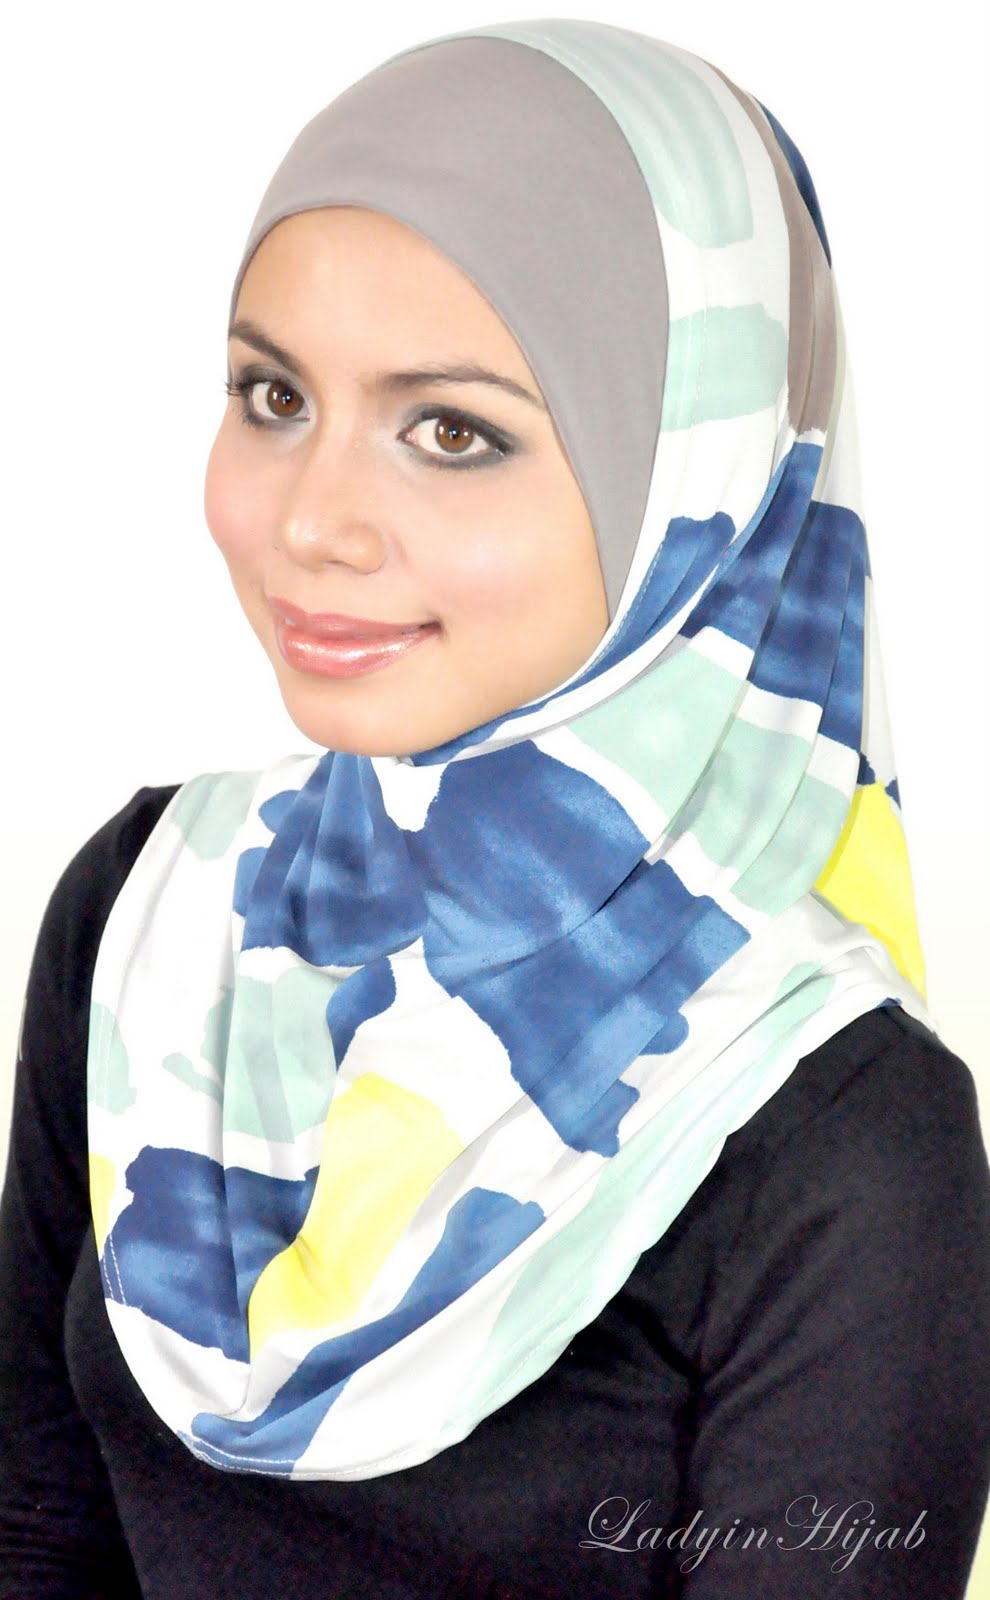 Lady in hijab photos 31 best tween magazines images on Pinterest Tween, For girls and